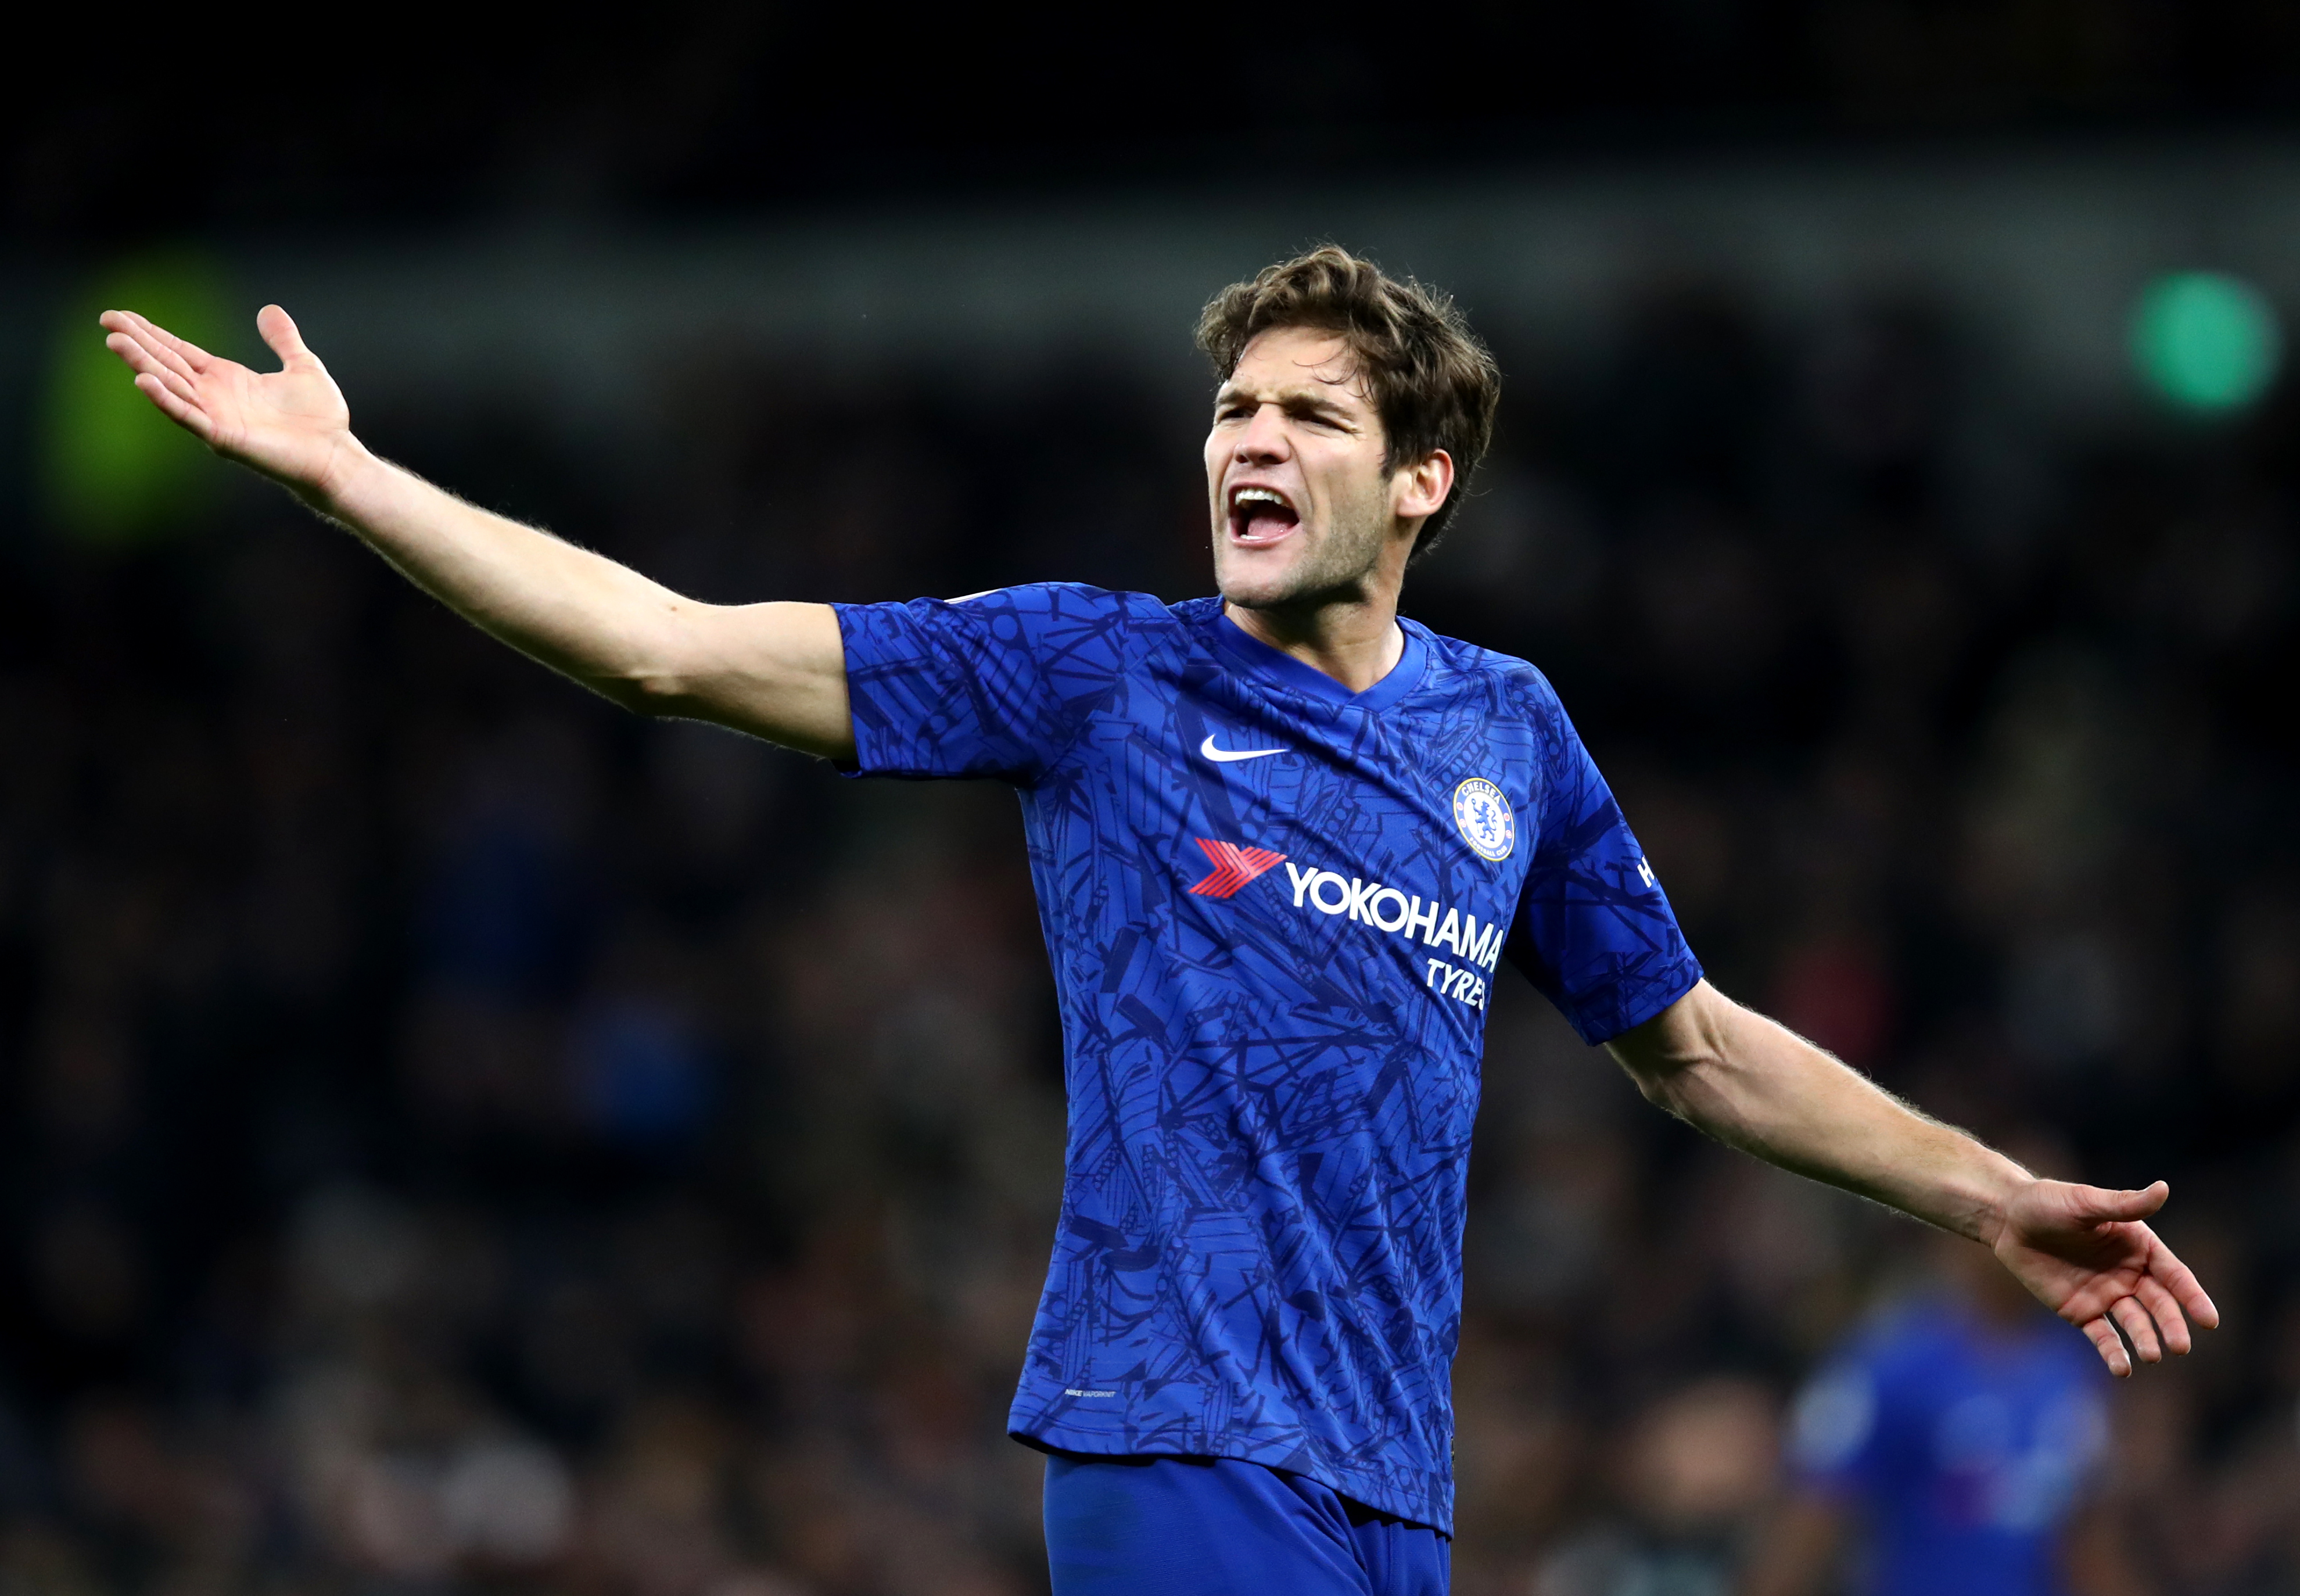 Chelsea's saviour against Bournemouth (Photo by Julian Finney/Getty Images)